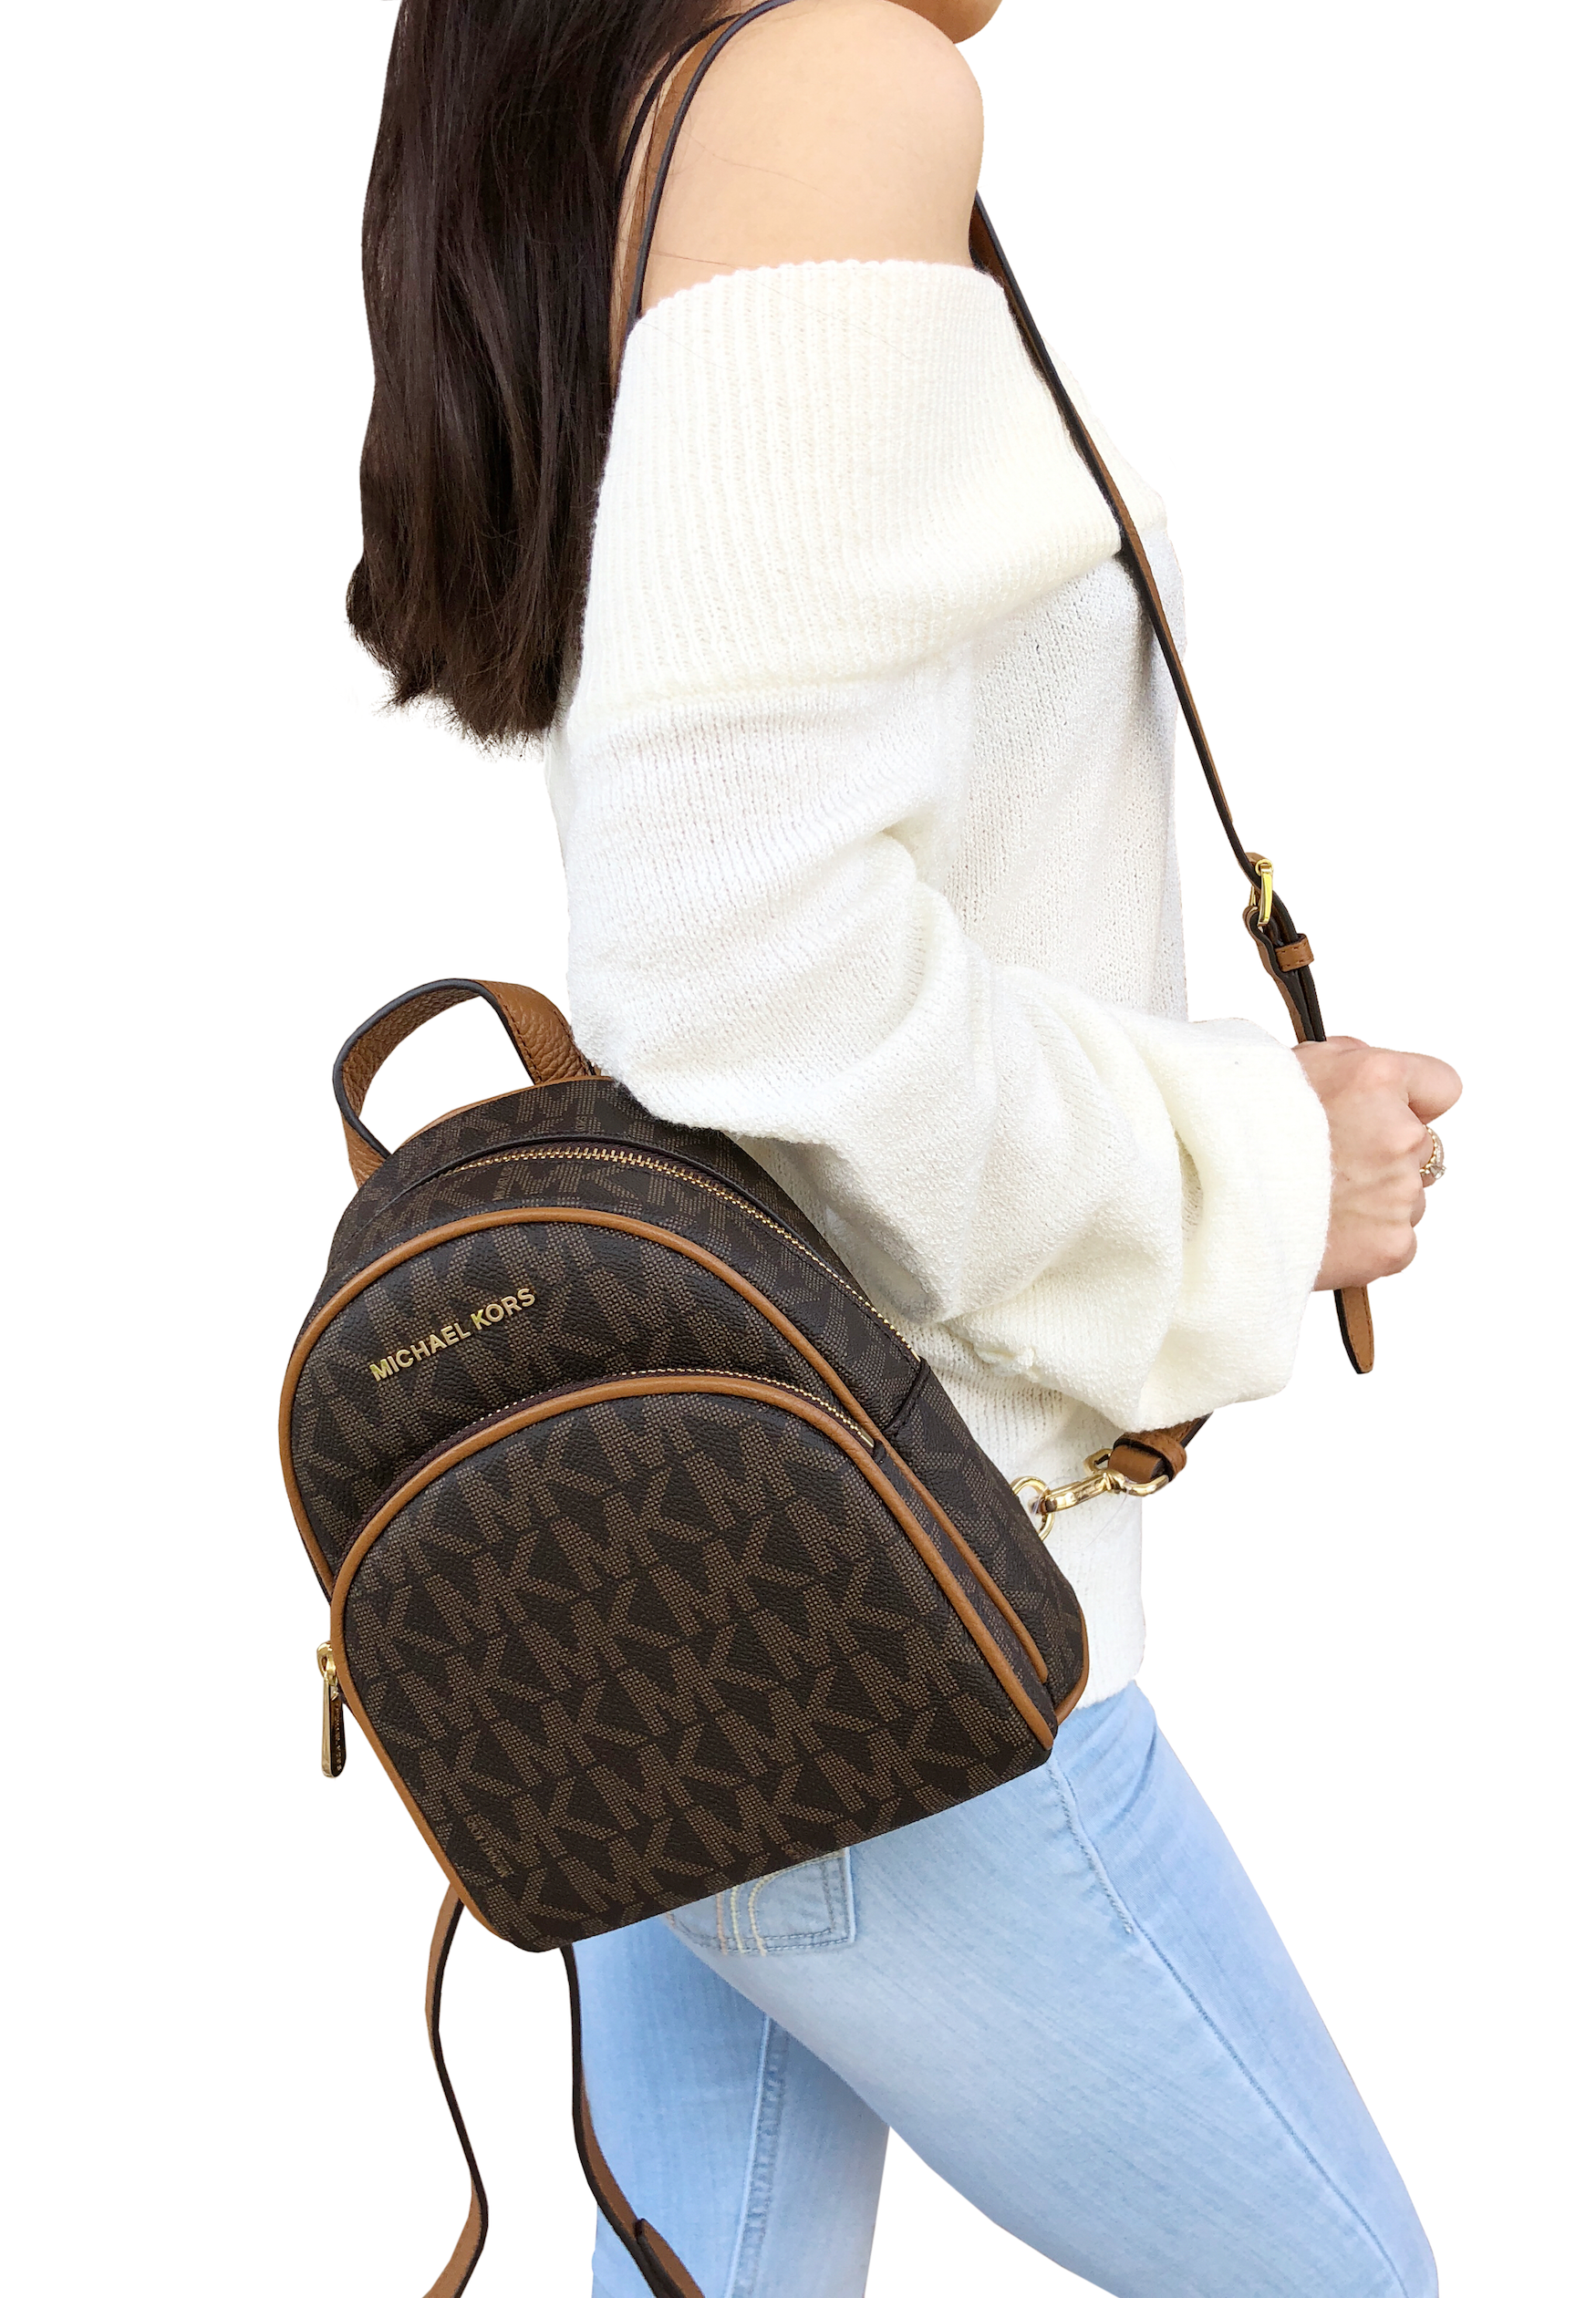 787dc492903d Michael Kors Abbey Mini Backpack Crossbody Brown MK Signature Acorn Extra  Small